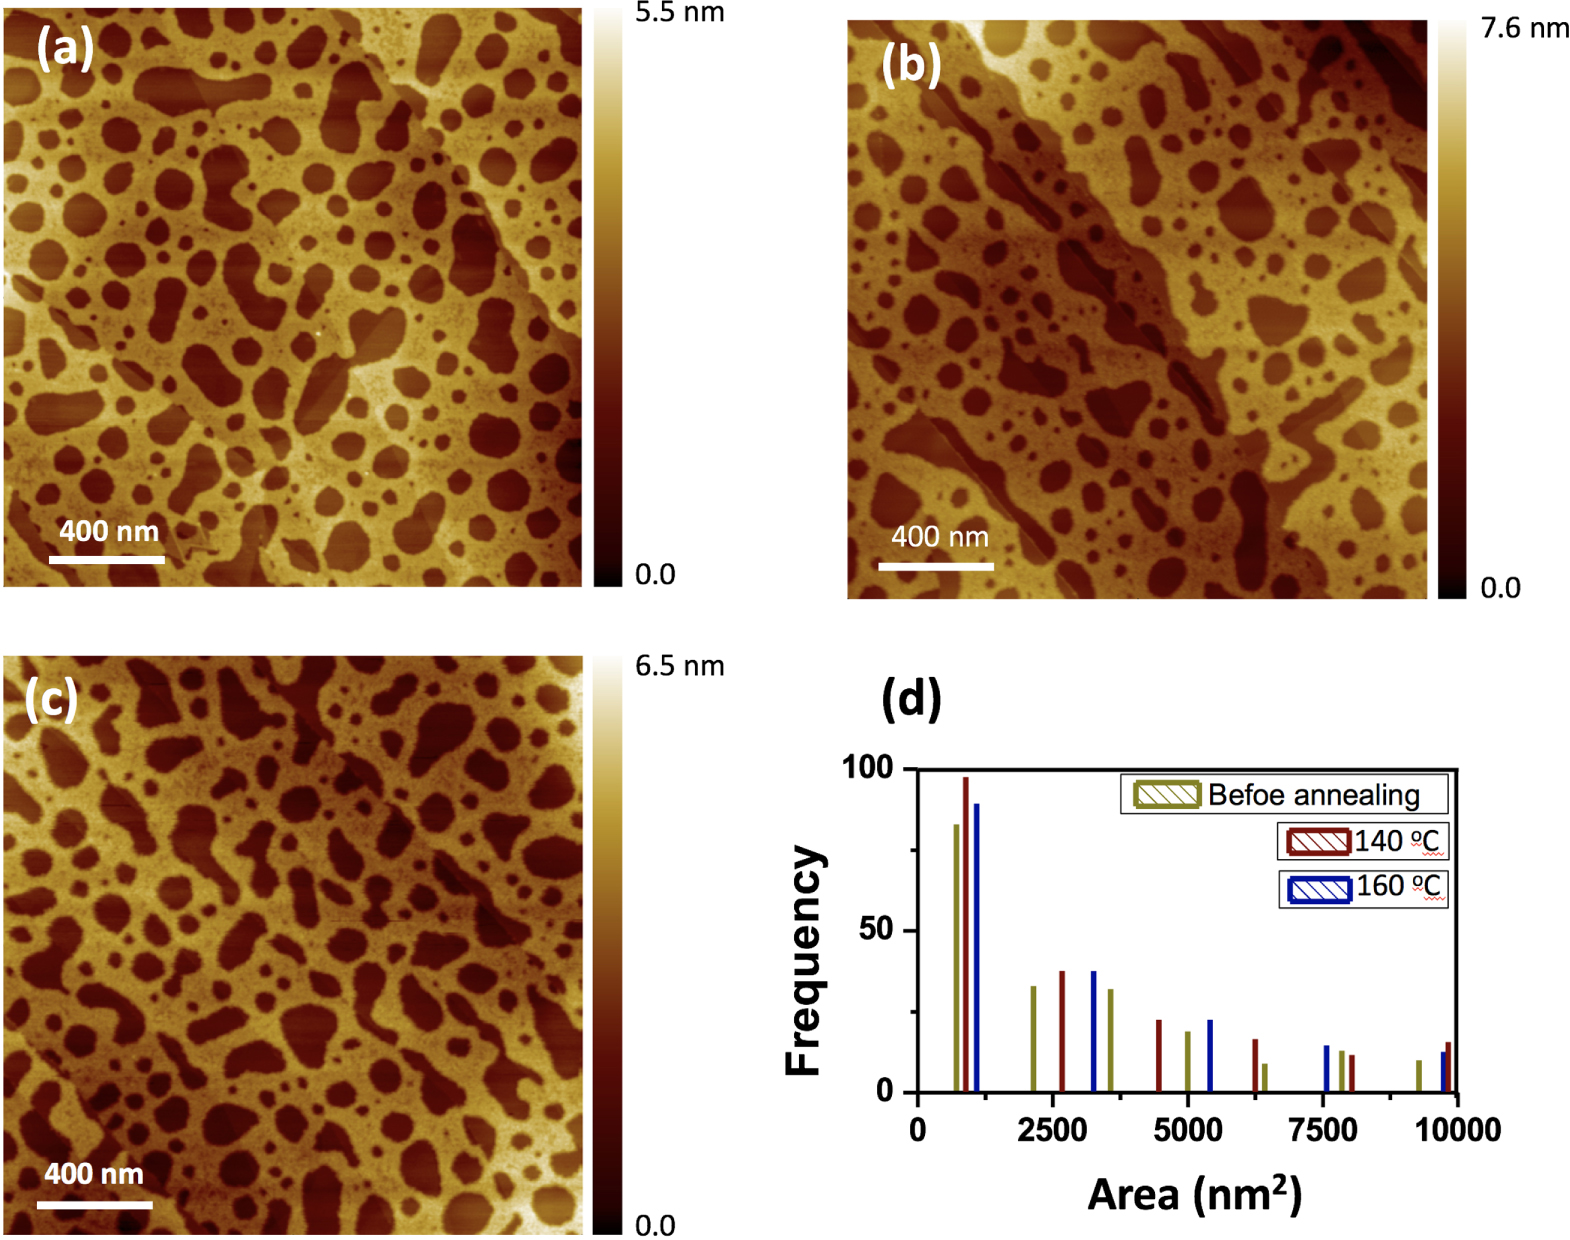 "Figure 5. from ""Self-assembled PCBM bilayers on graphene and HOPG examined by AFM and STM"" by Yanlong Li et al.: AFM images of PCBM bilayer and size distributions of holes at different conditions. (a) AFM image of a PCBM bilayer before annealing. (b) AFM image of a PCBM bilayer after annealing at 140 °C. (c) AFM image of a PCBM bilayer after annealing at 160 °C. (d) Area distribution histogram of holes (without PCBM area) obtained from measurements of the area of holes in AFM images of before (green) and after annealing at 140 °C (dark red) and 160 °C (dark blue). Monolithic silicon cantilevers (NCST, NANO WORLD) with a spring constant of 7.4 N m−1, first longitudinal resonance frequencies between 120 and 205 kHz, and nominal tip radius of 8 nm were employed in soft tapping mode. Simultaneous height and phase images were acquired and reproduced across multiple samples."